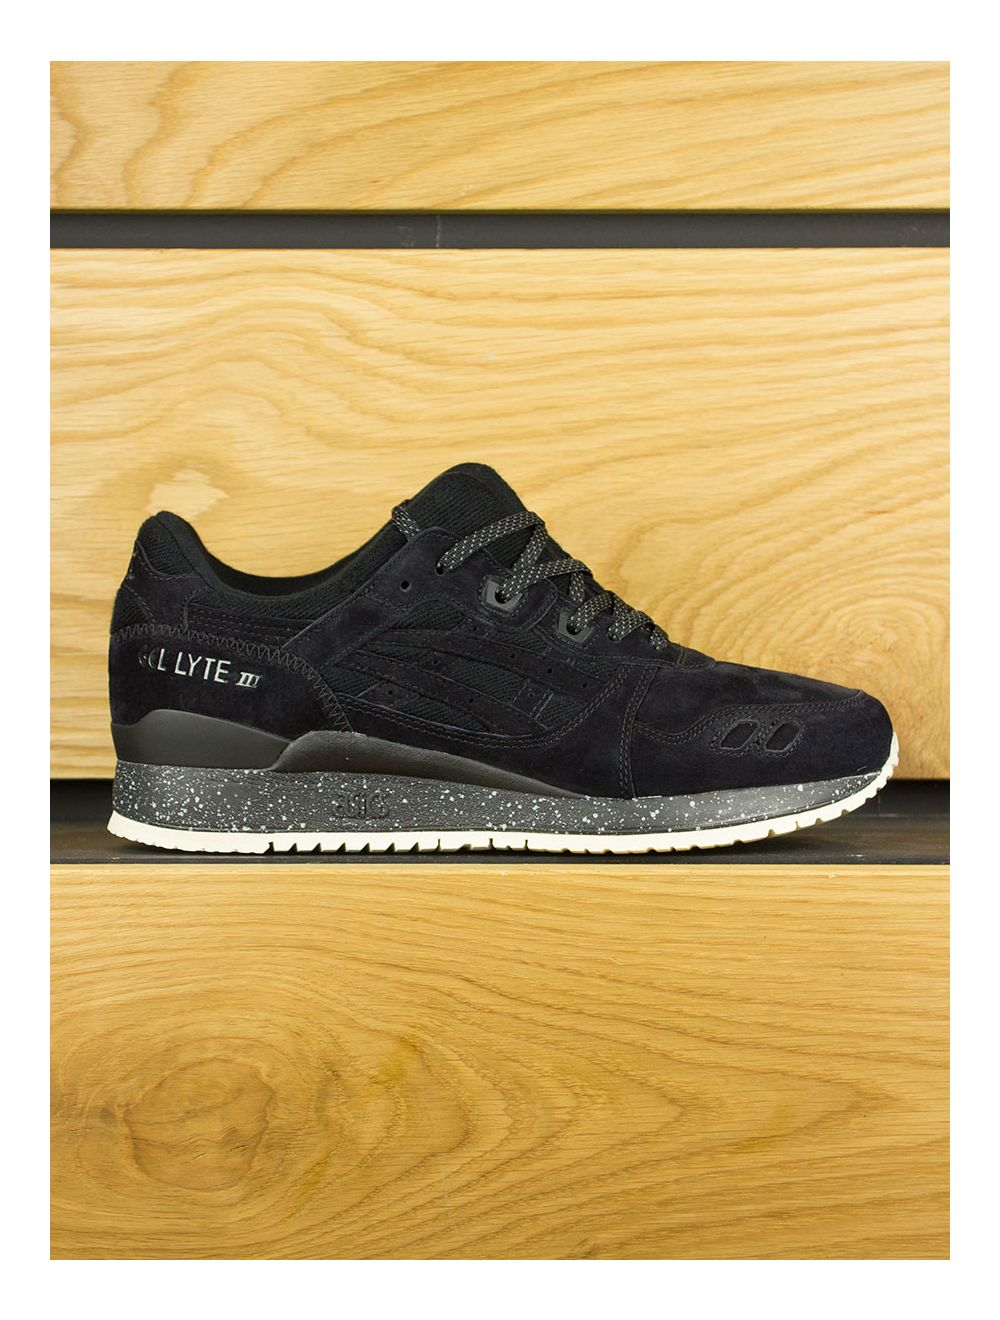 timeless design 217a5 9c083 Asics Gel Lyte III x Reigning Champ 'Black'